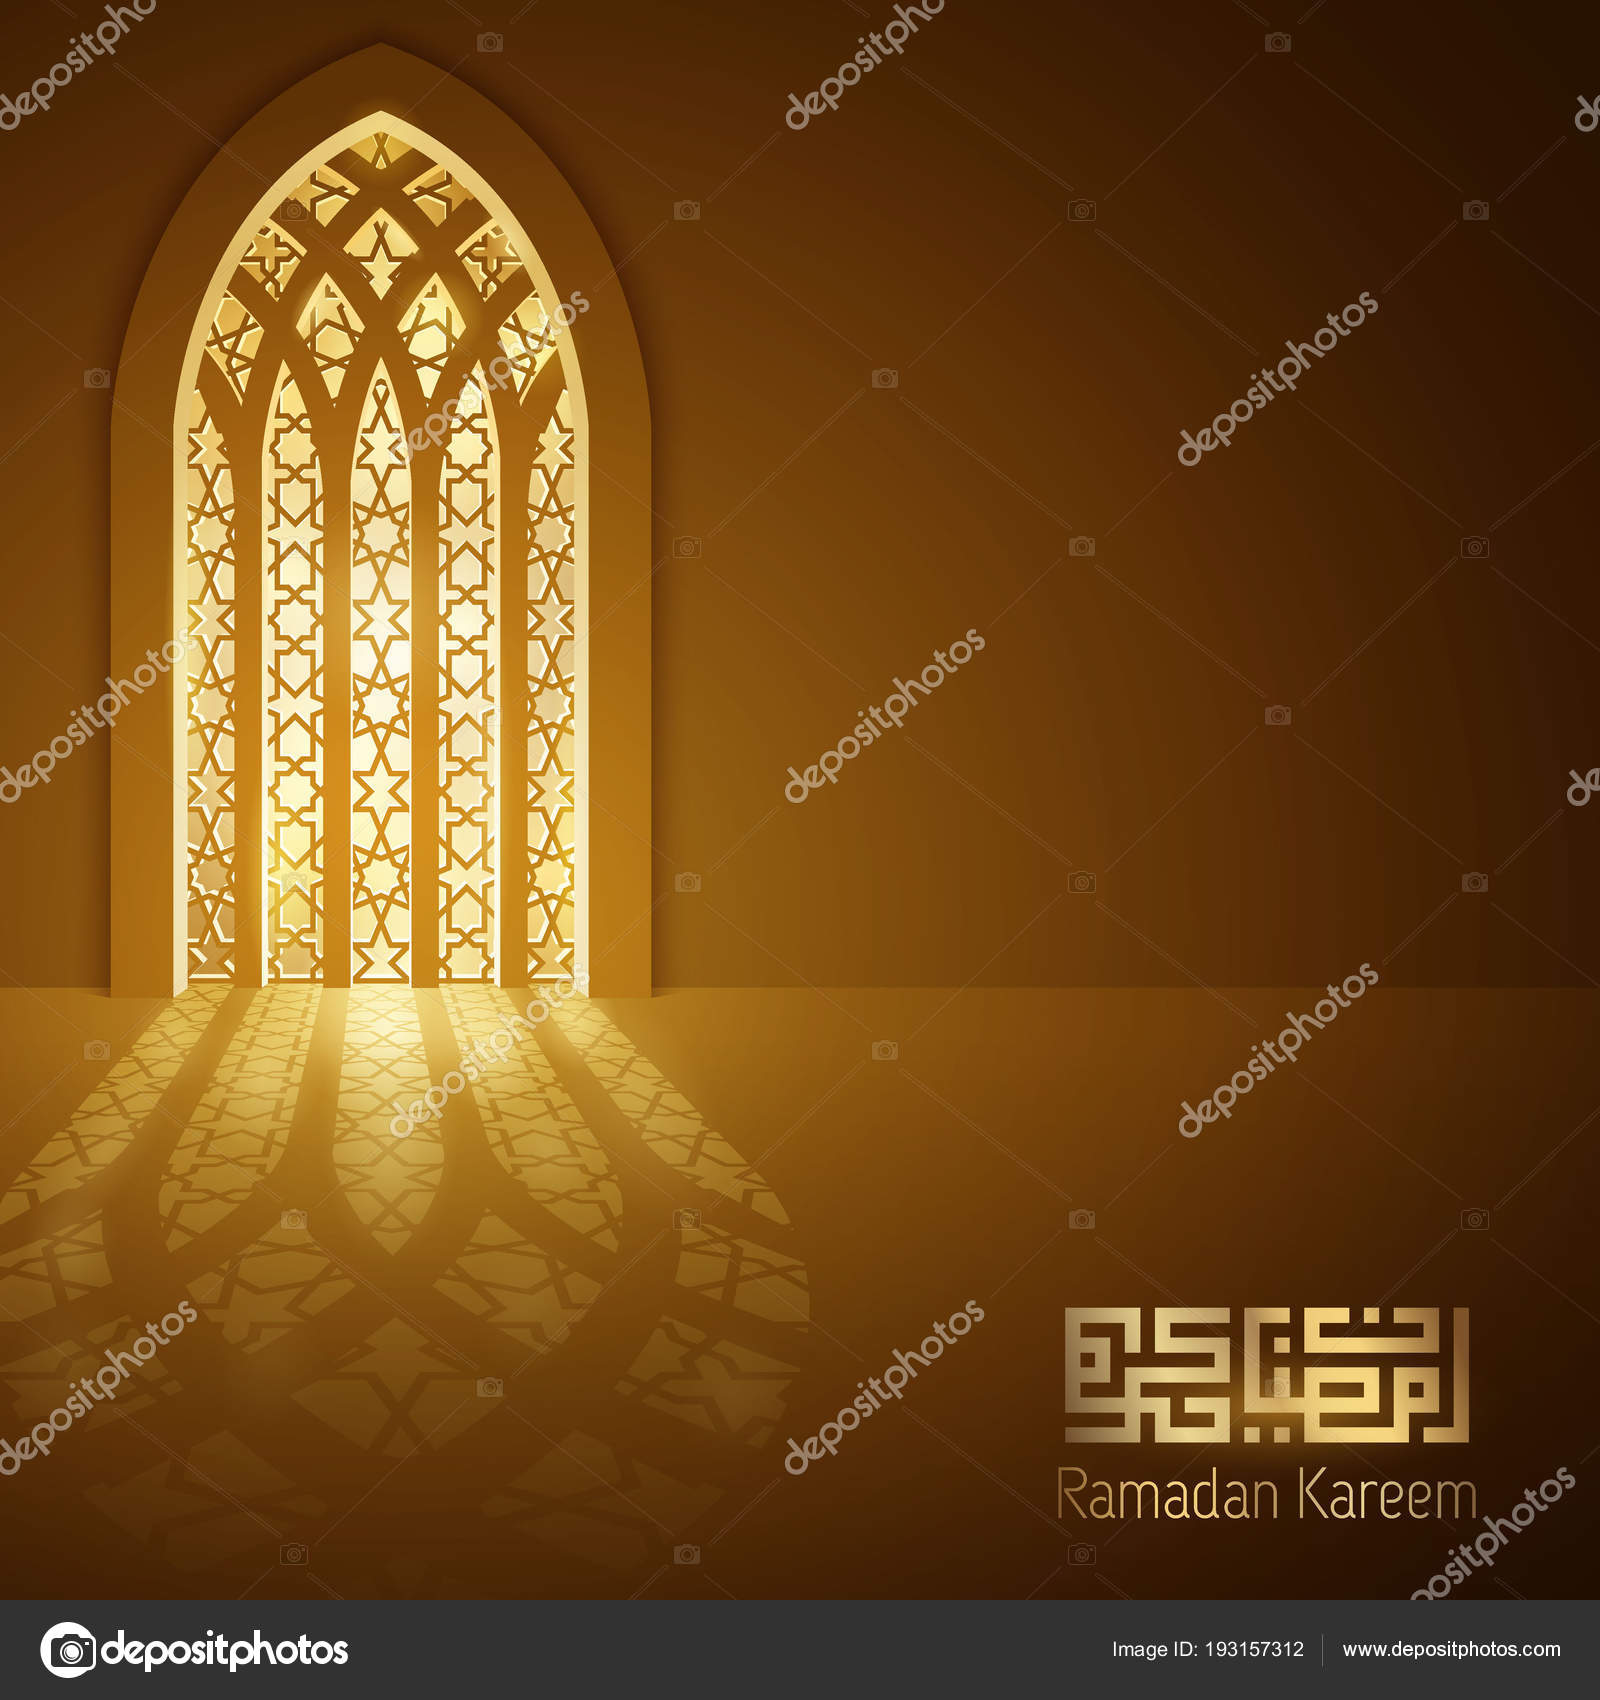 Ramadan Kareem Greeting Golden Background Glow Islamic Mosque Door Arabic u2014 Stock Vector & Ramadan Kareem Greeting Golden Background Glow Islamic Mosque Door ...